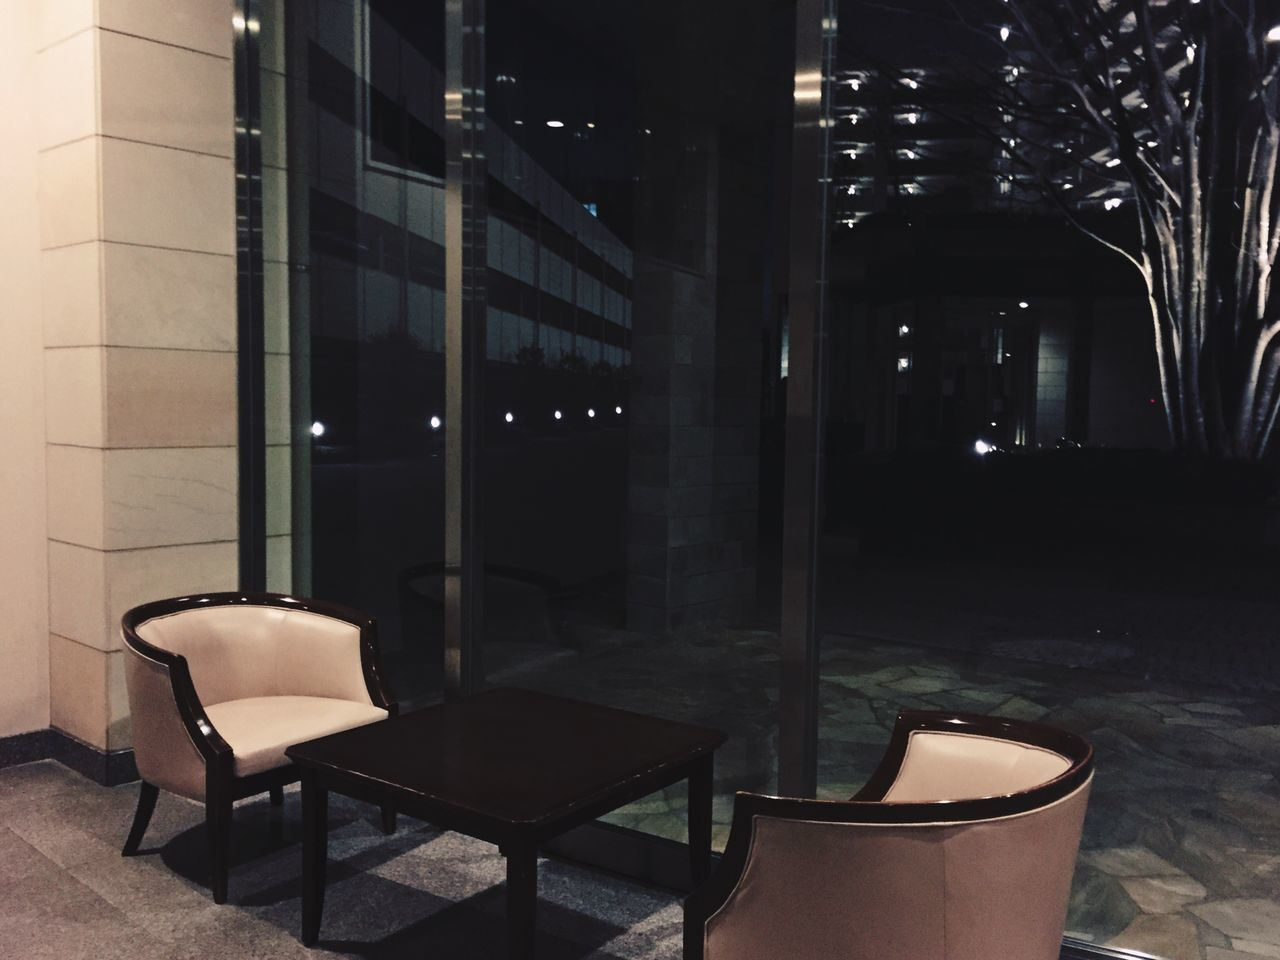 chair, night, illuminated, no people, empty, absence, architecture, built structure, building exterior, indoors